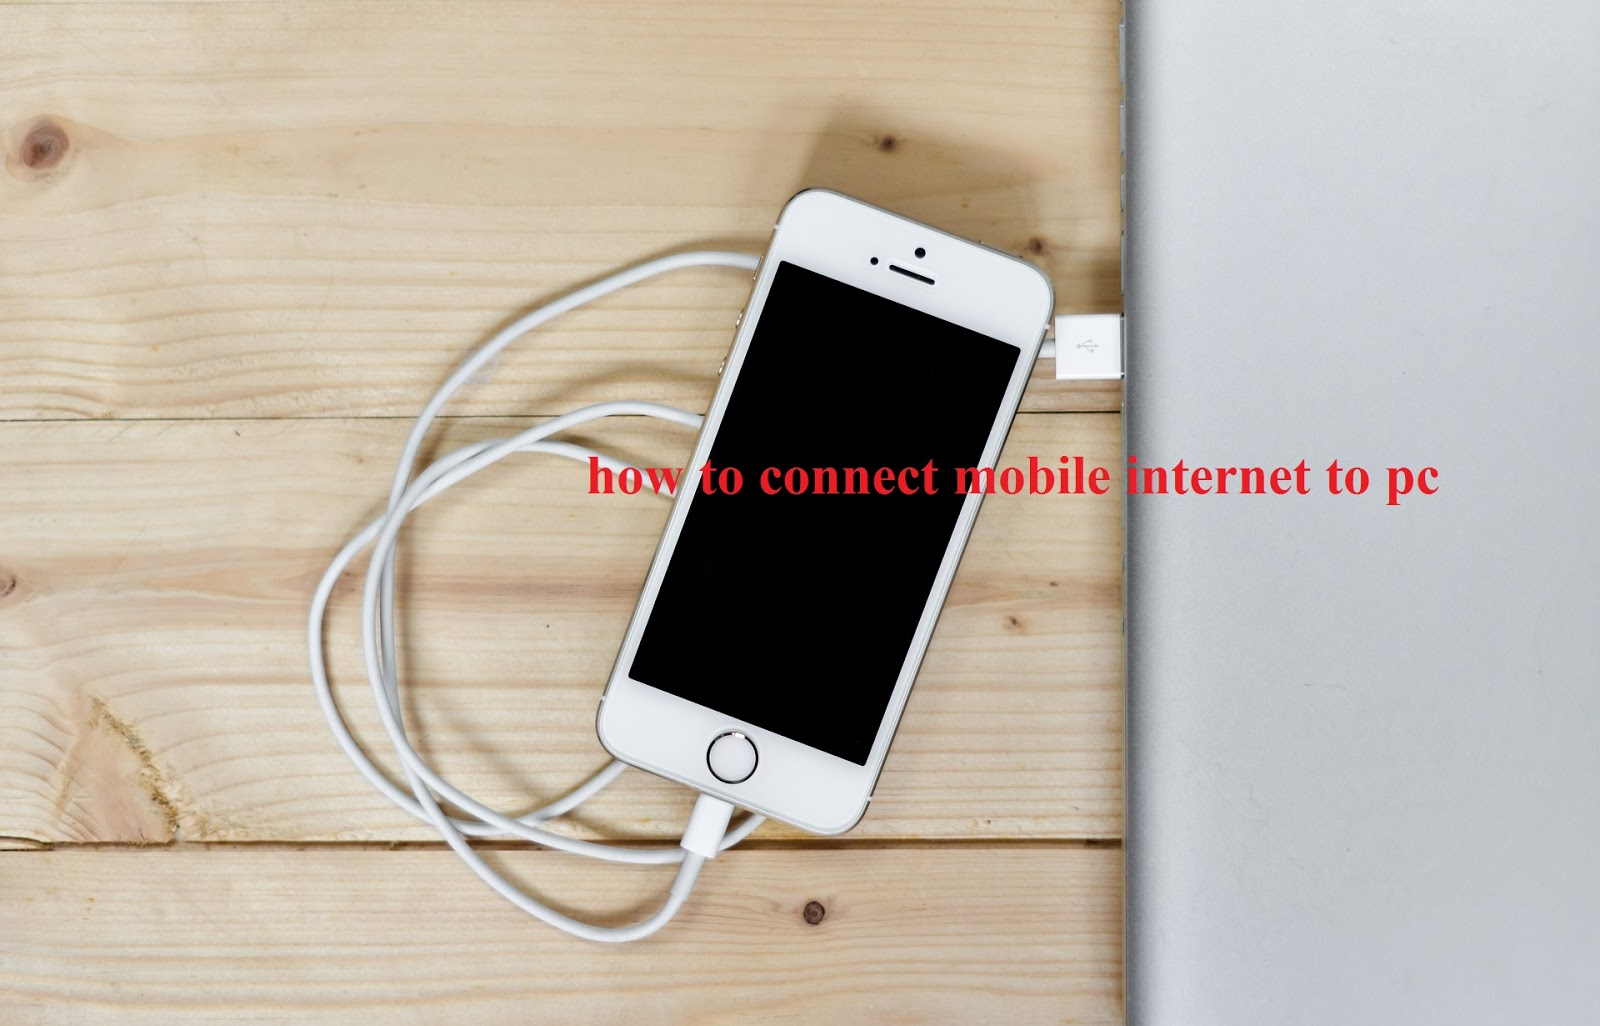 How To Connect Mobile Internet To Pc